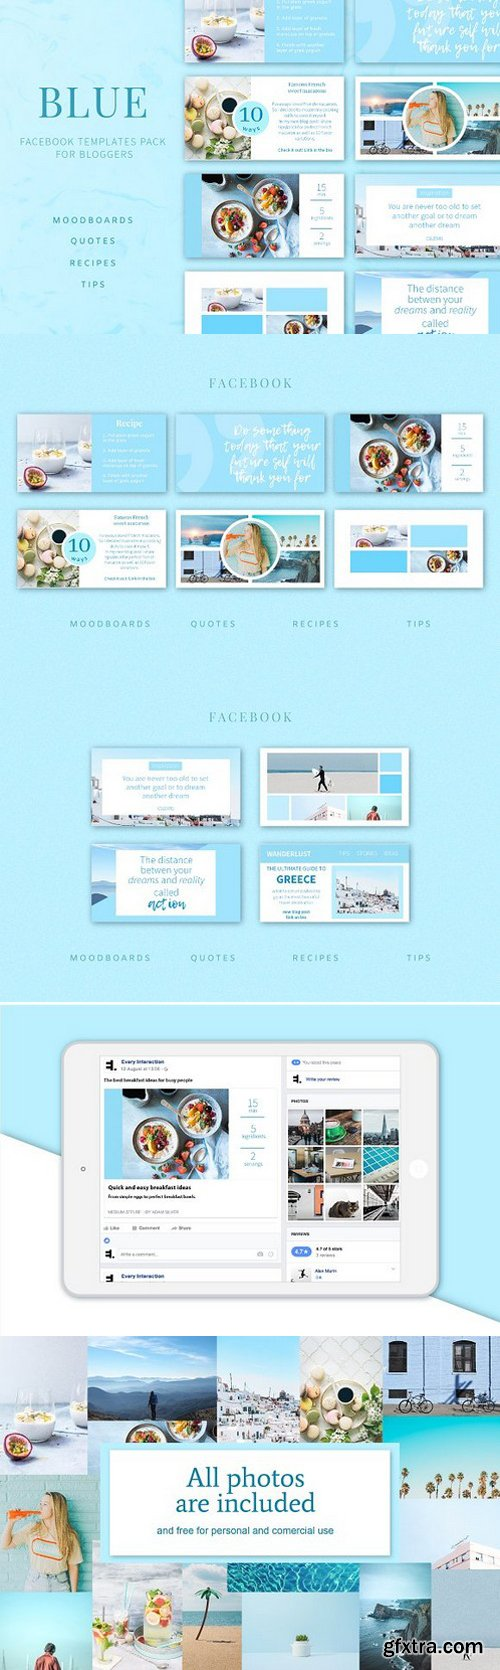 Blue Facebook post templates pack